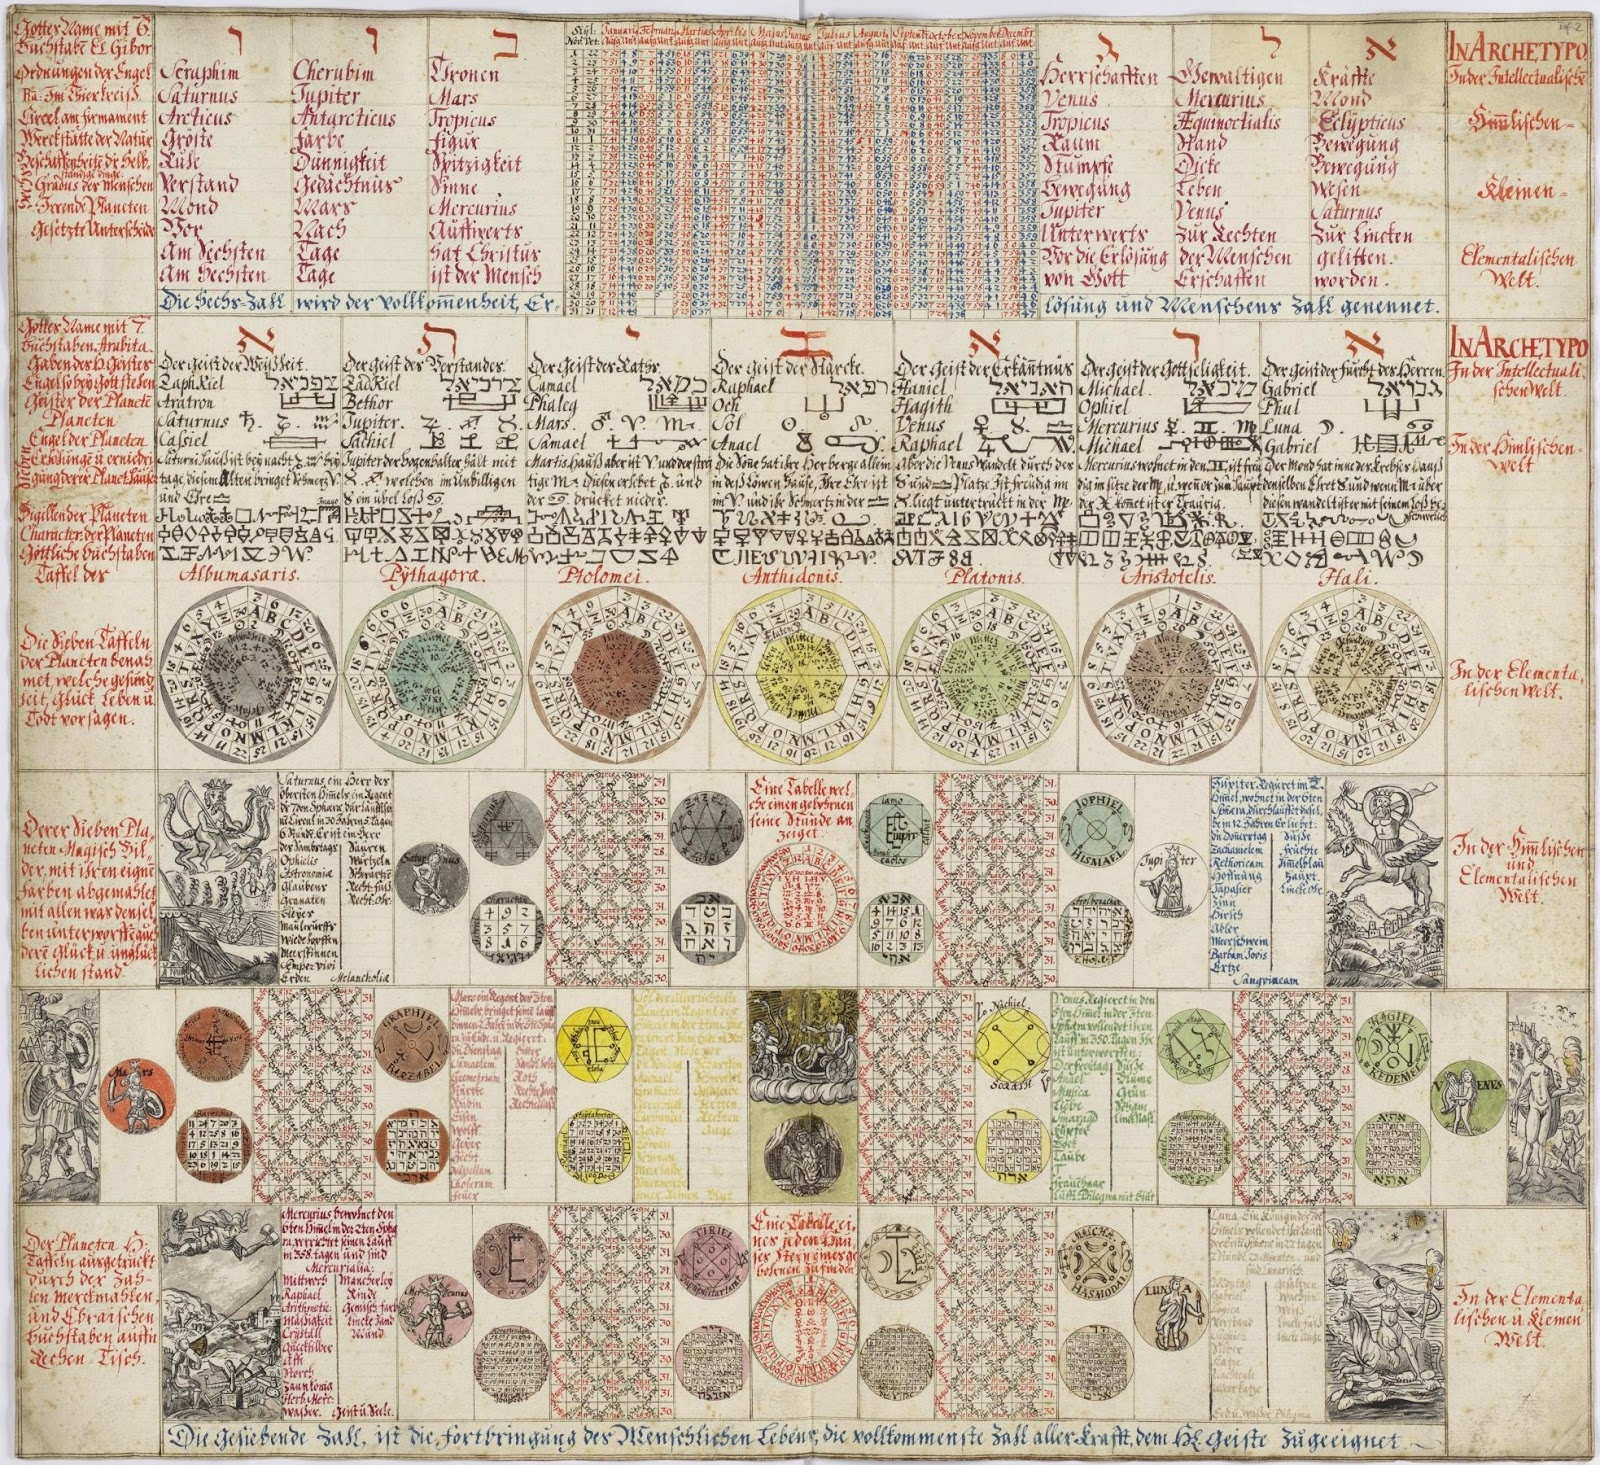 Studies On Magic Seals Of The Archangels In The Magical Calendar